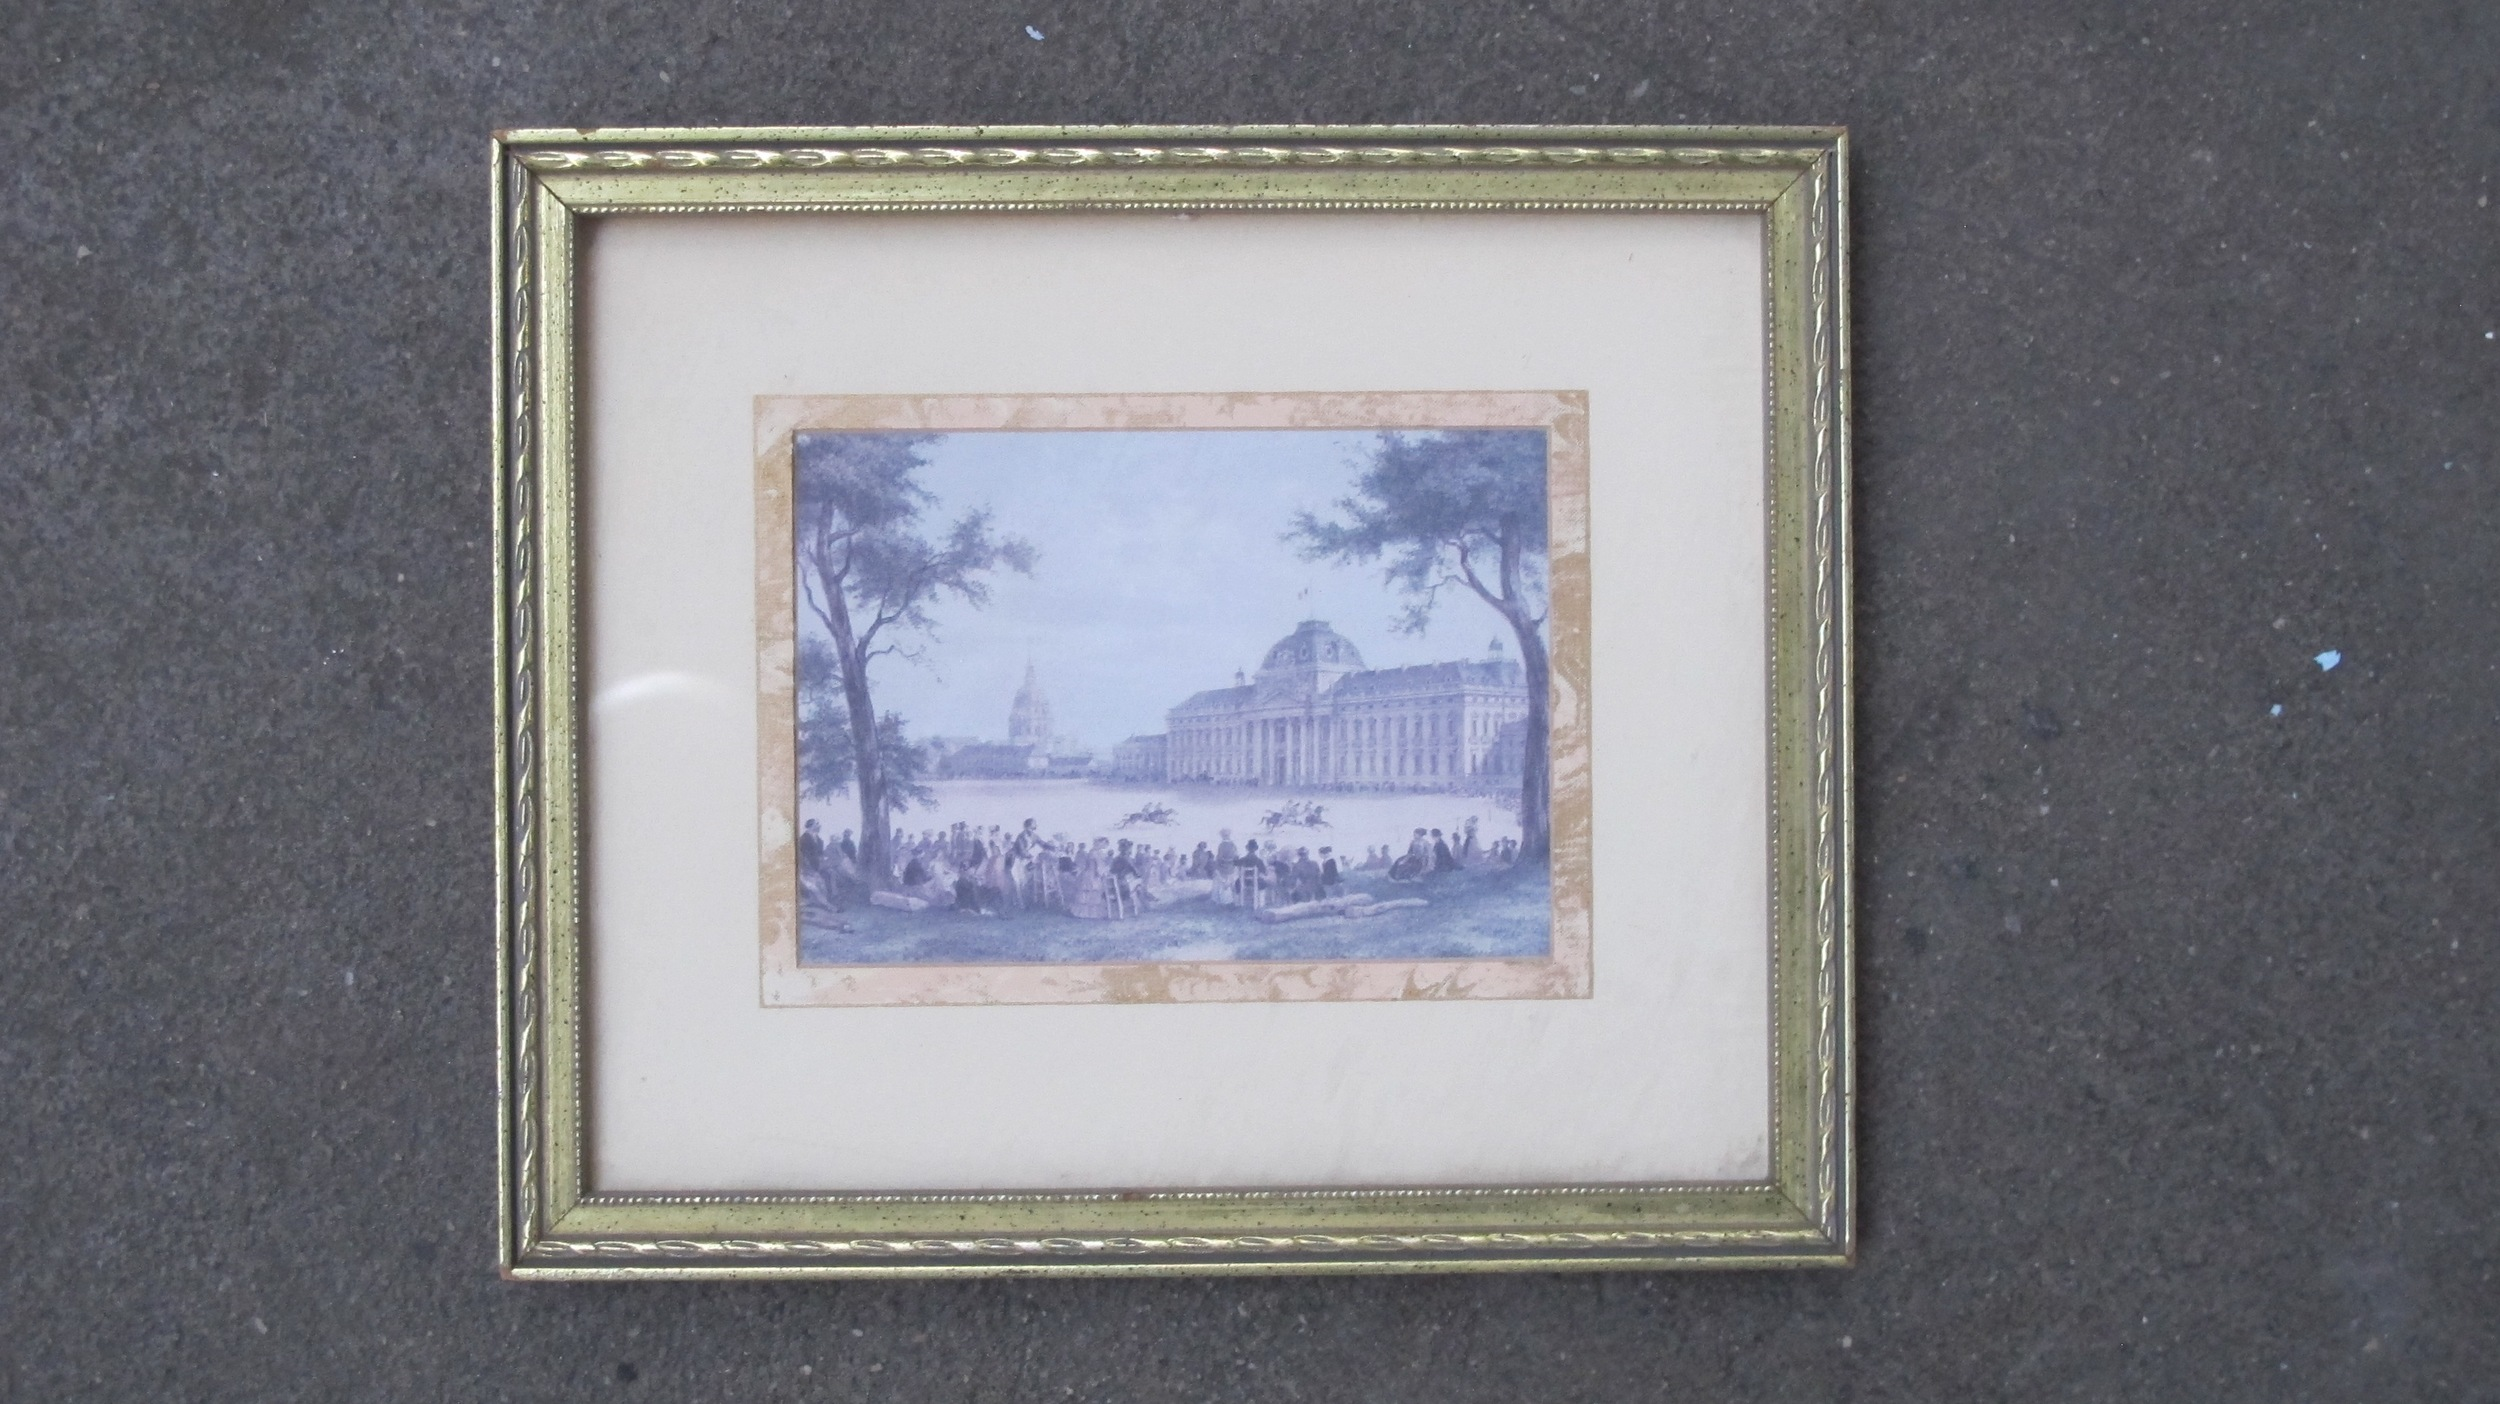 Framed Horse Race and Building $60